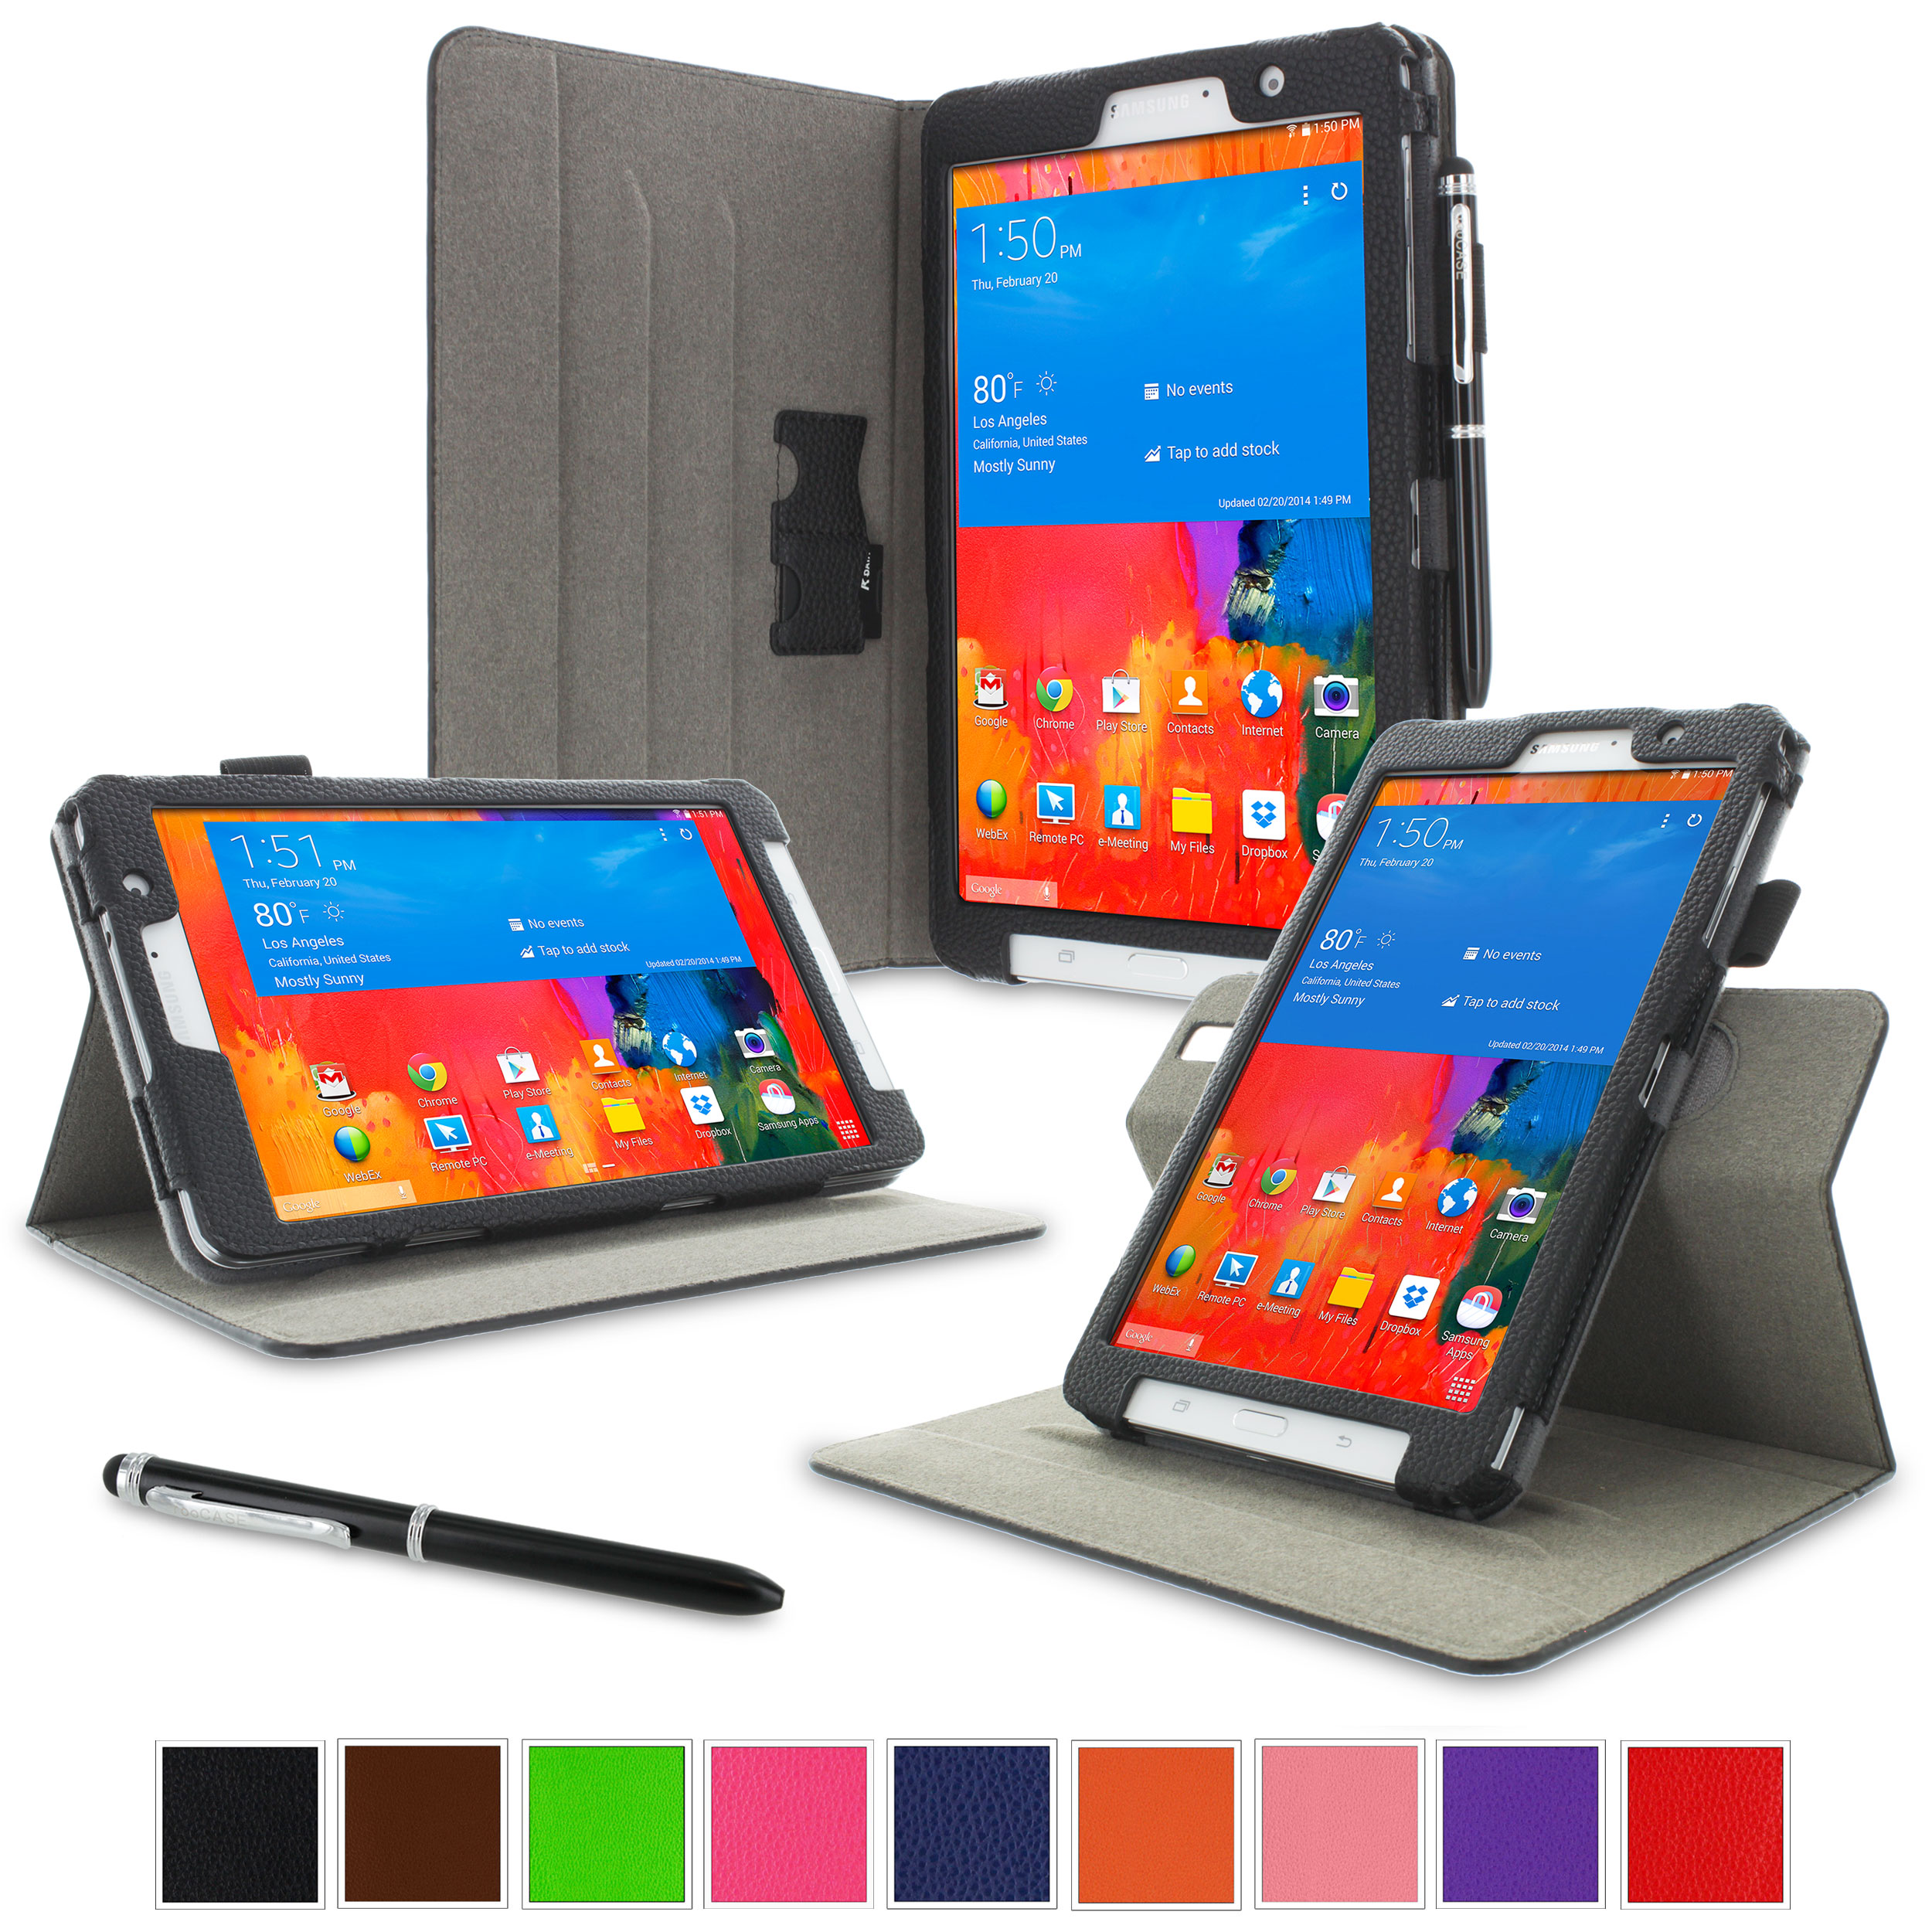 "rooCASE Samsung Galaxy Tab Pro 8.4 Case - Dual View Multi-Angle Stand 8.4-Inch 8.4"" Tablet Case - BLACK (With Auto Wake / Sleep Cover)"